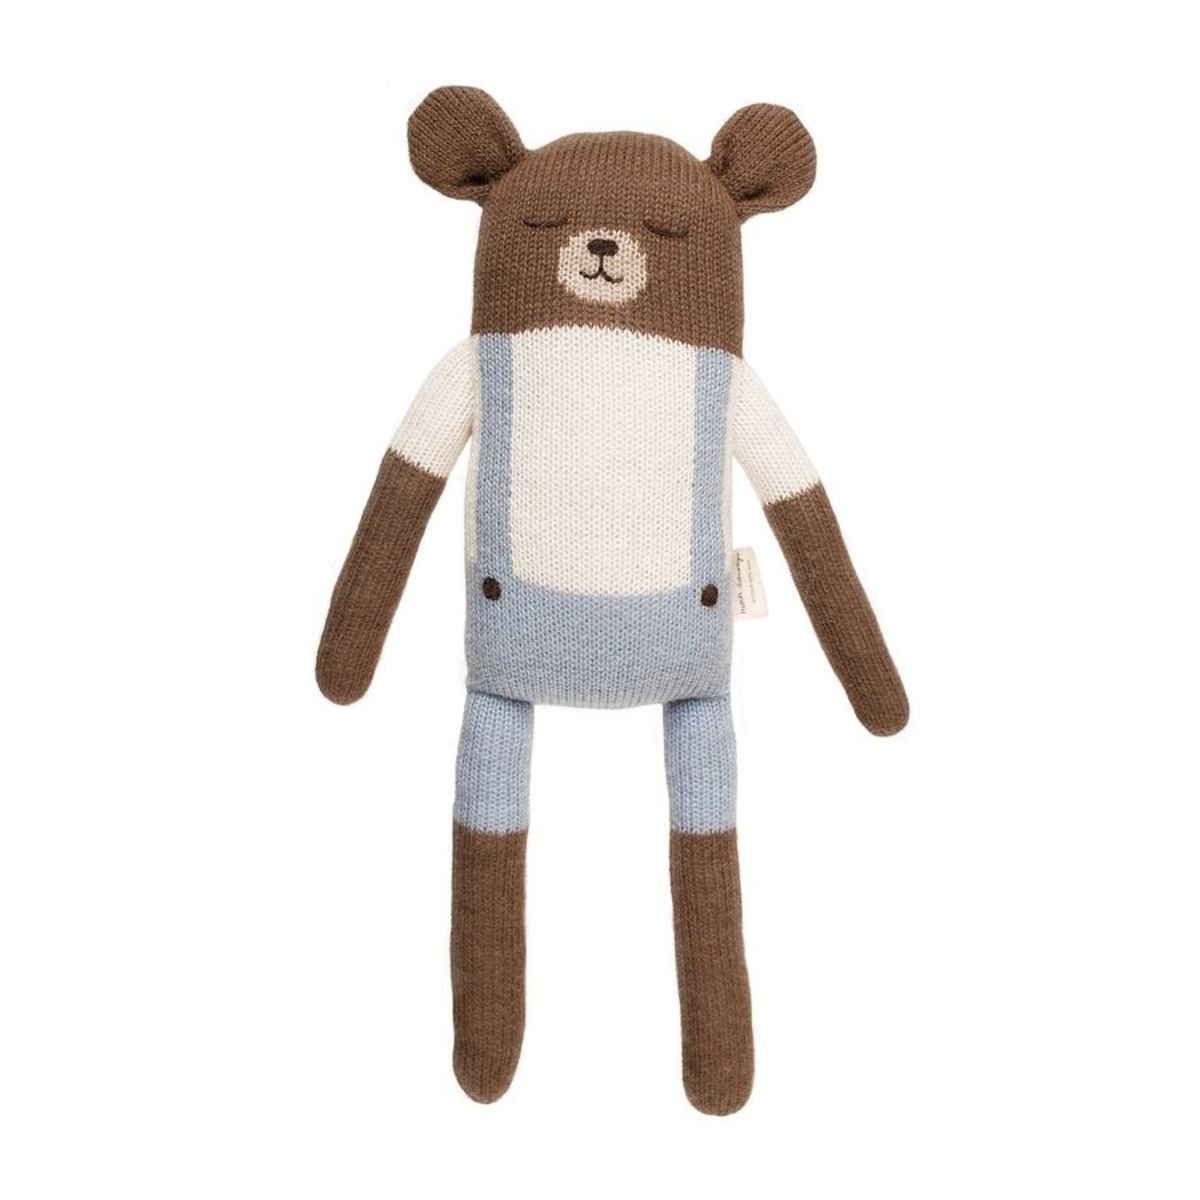 Main Sauvage - Big Teddy Soft Toy With Blue Shorts - 1